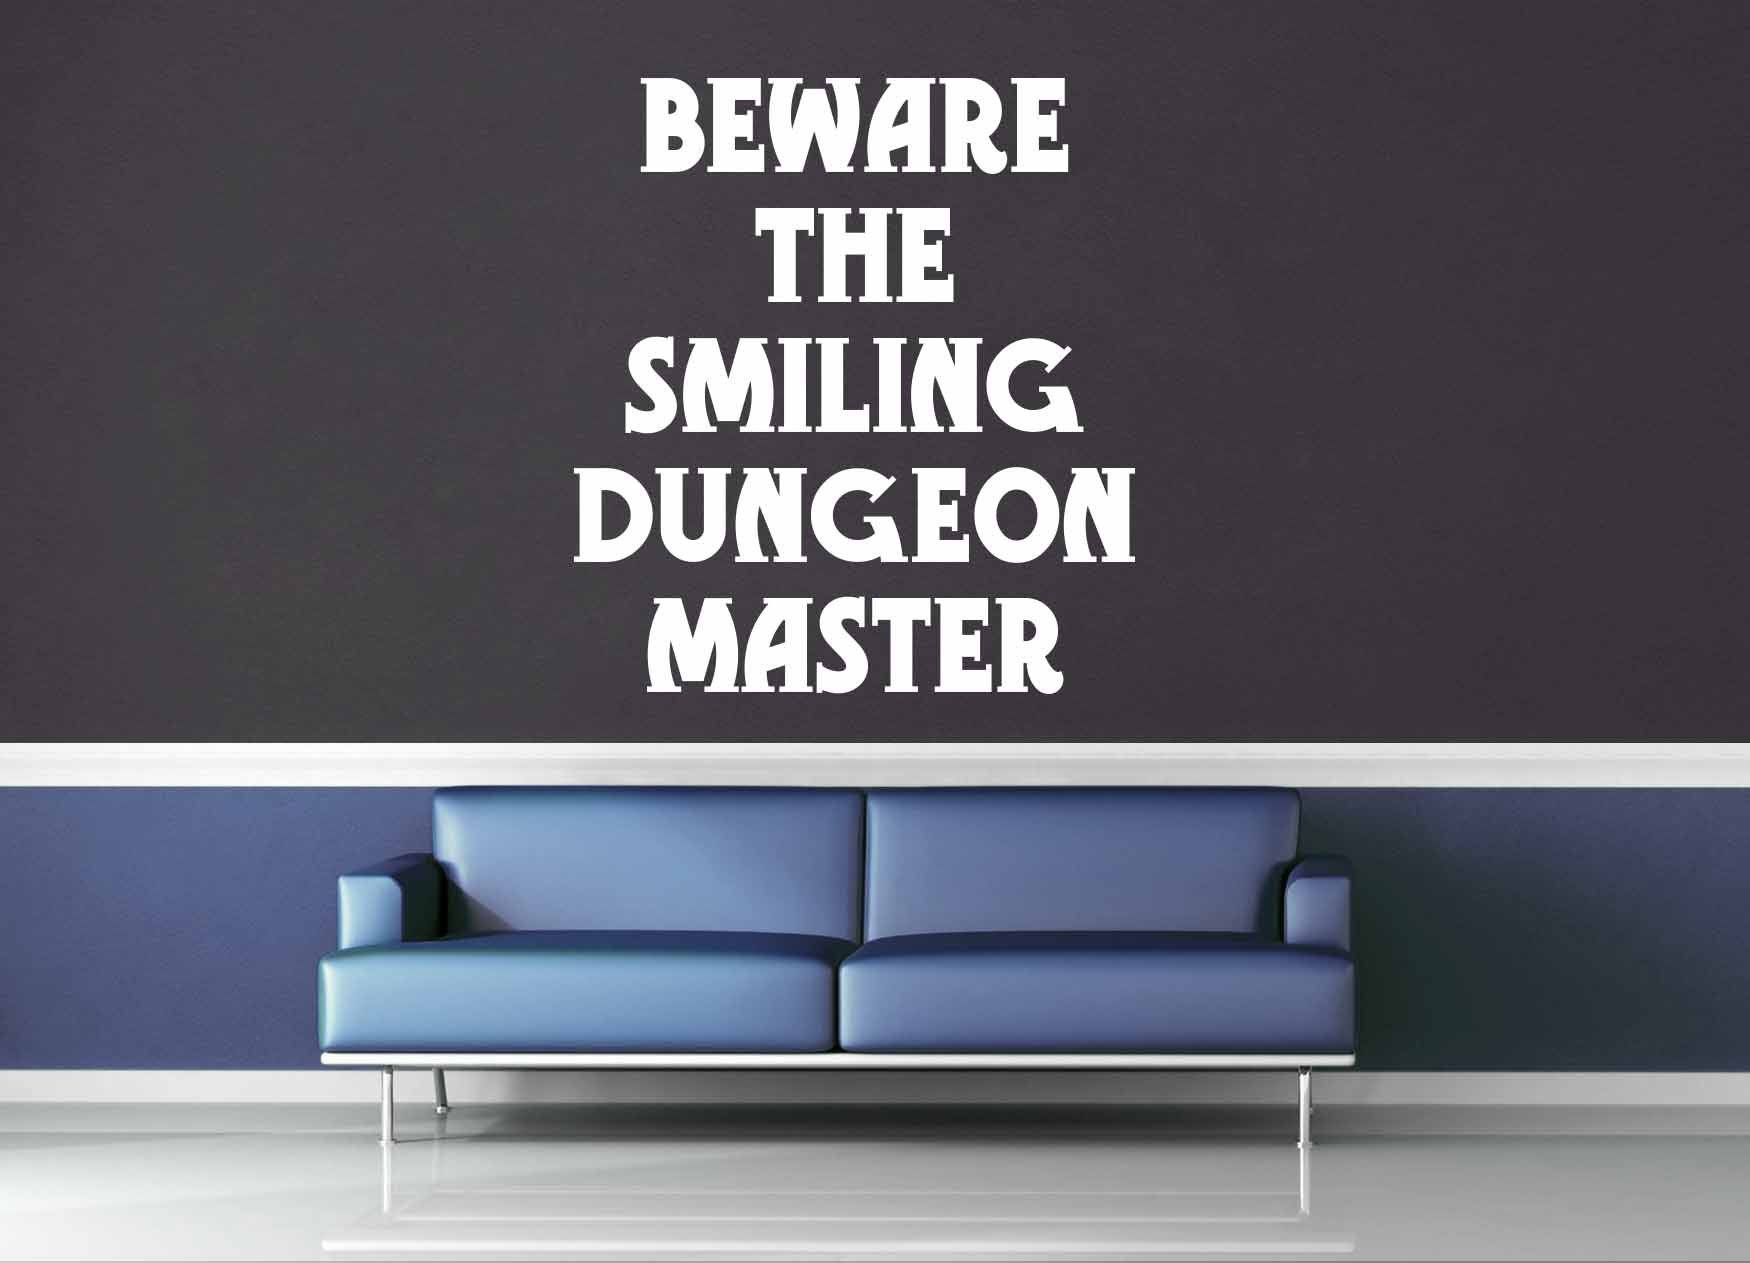 Beware the Smiling Dungeon Master - Gamer Quote - Wall Decal